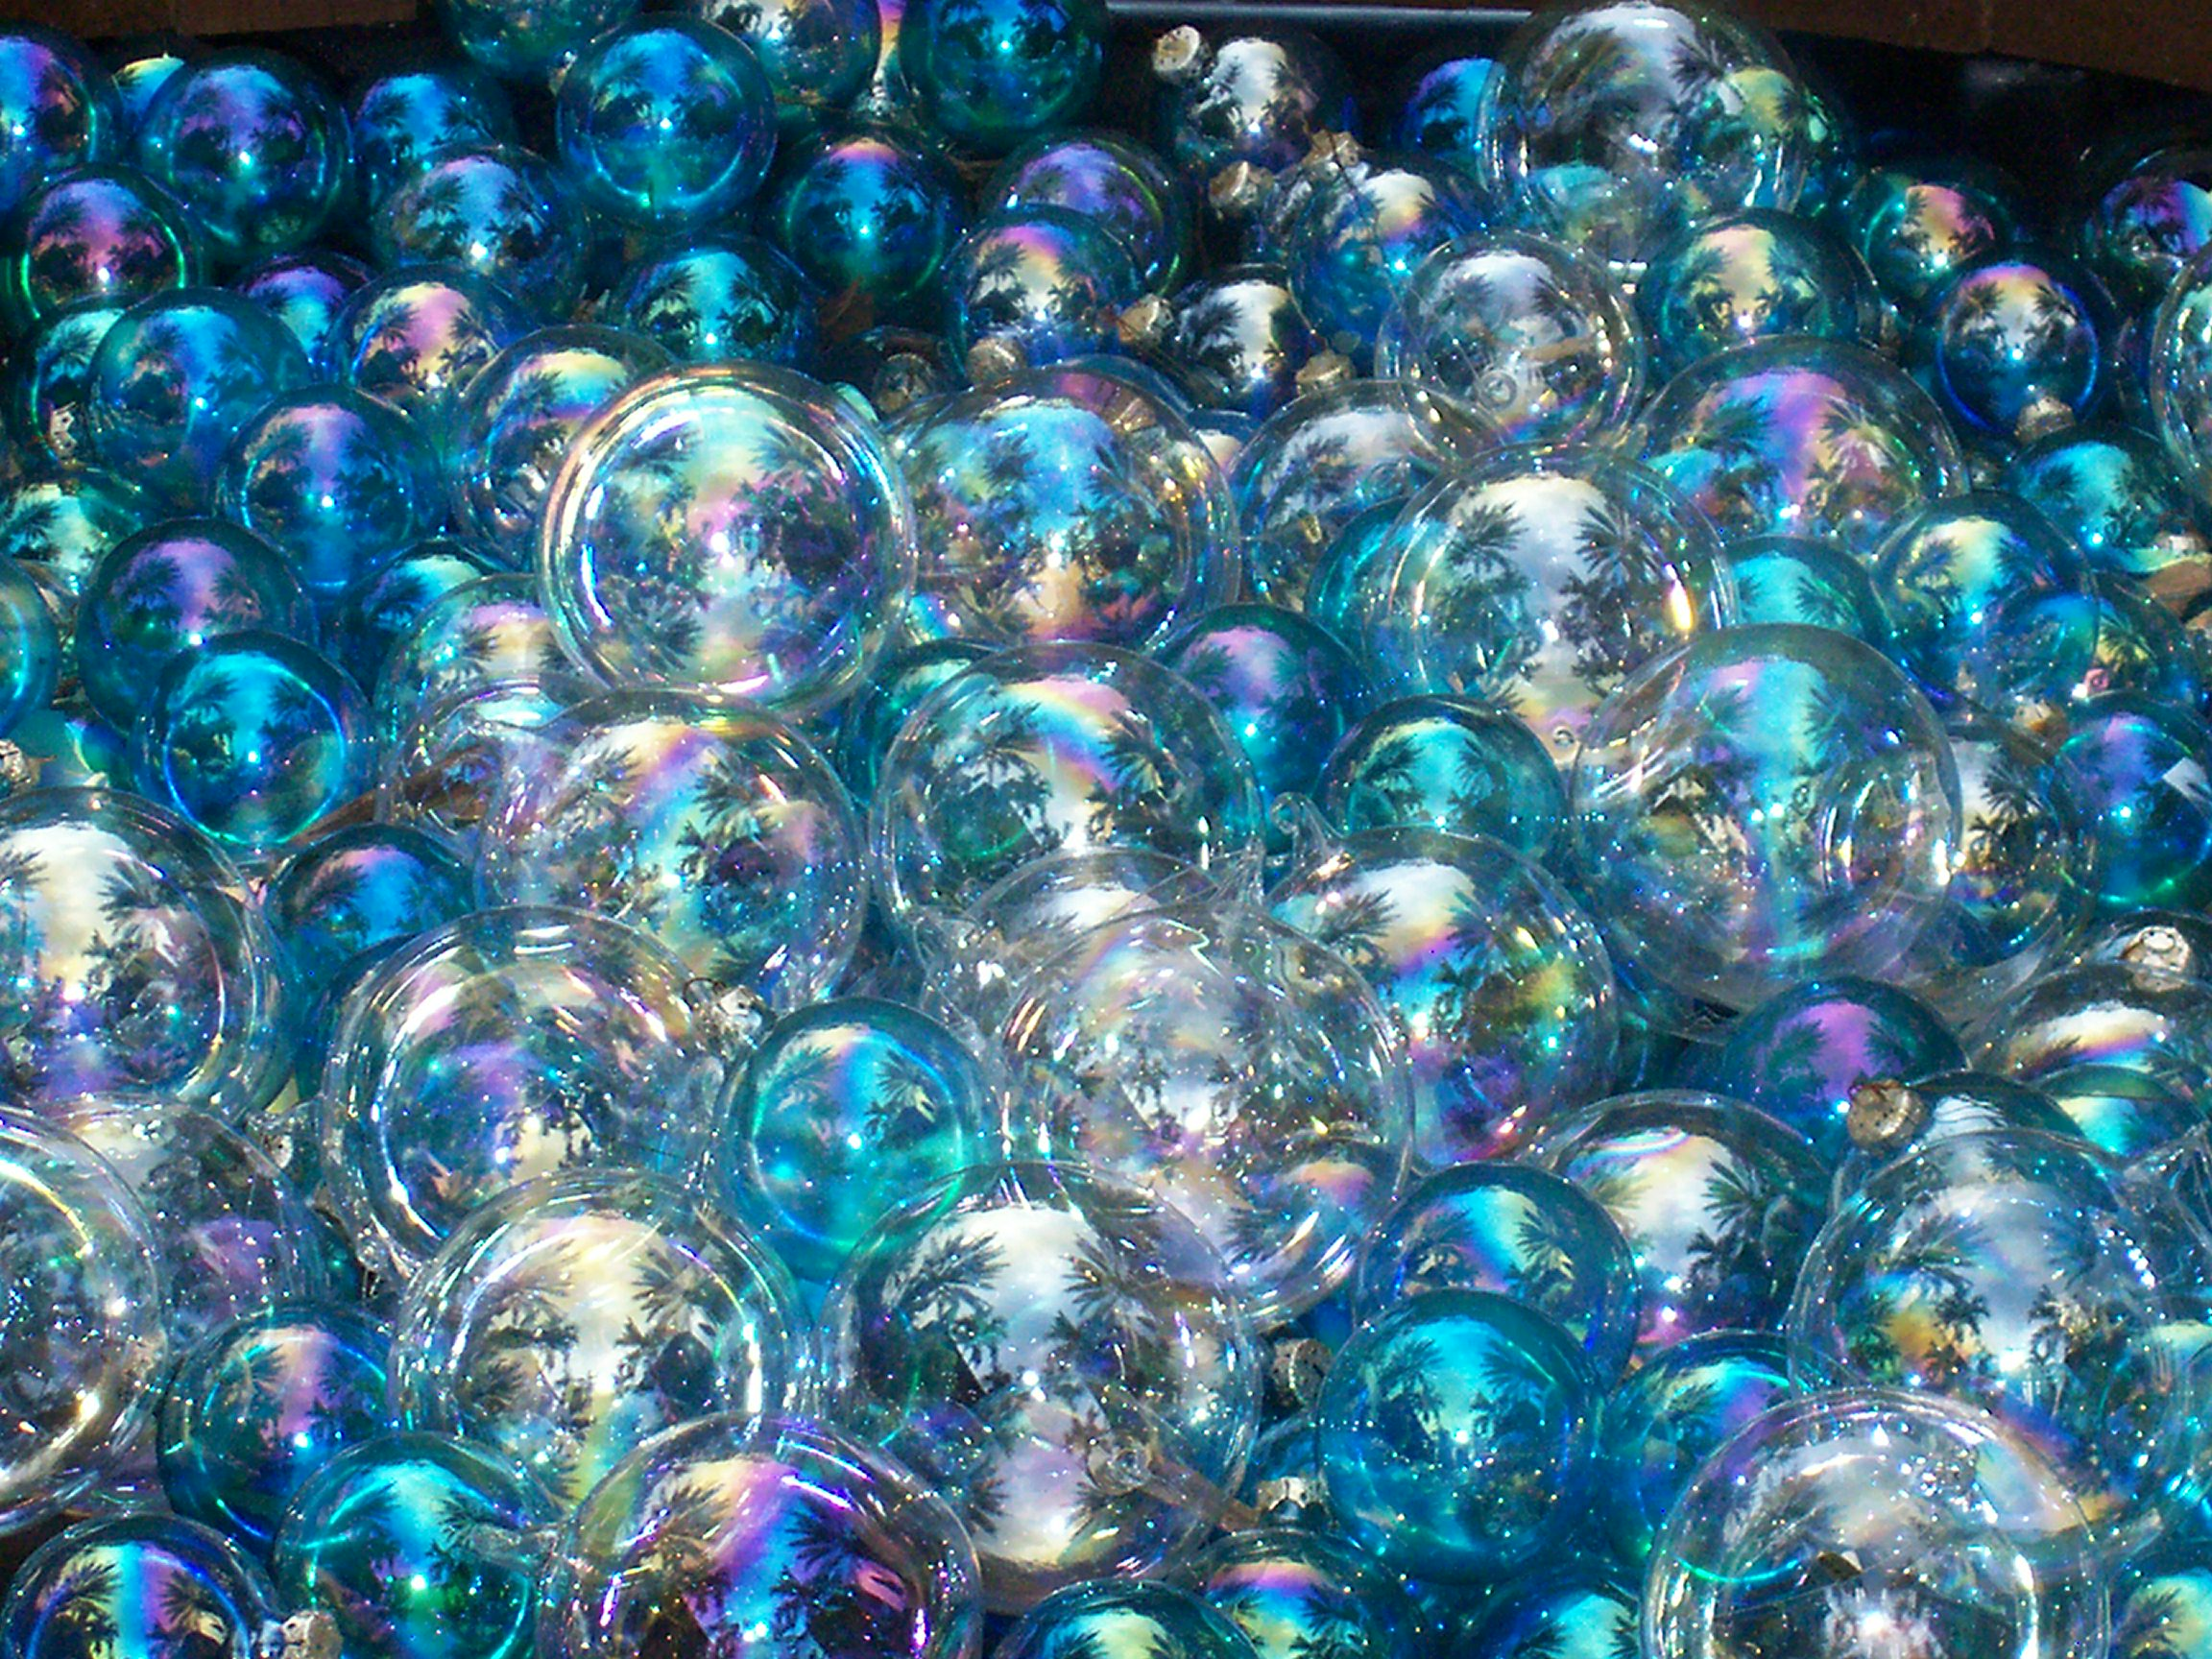 2304x1728 > Bubbles Wallpapers